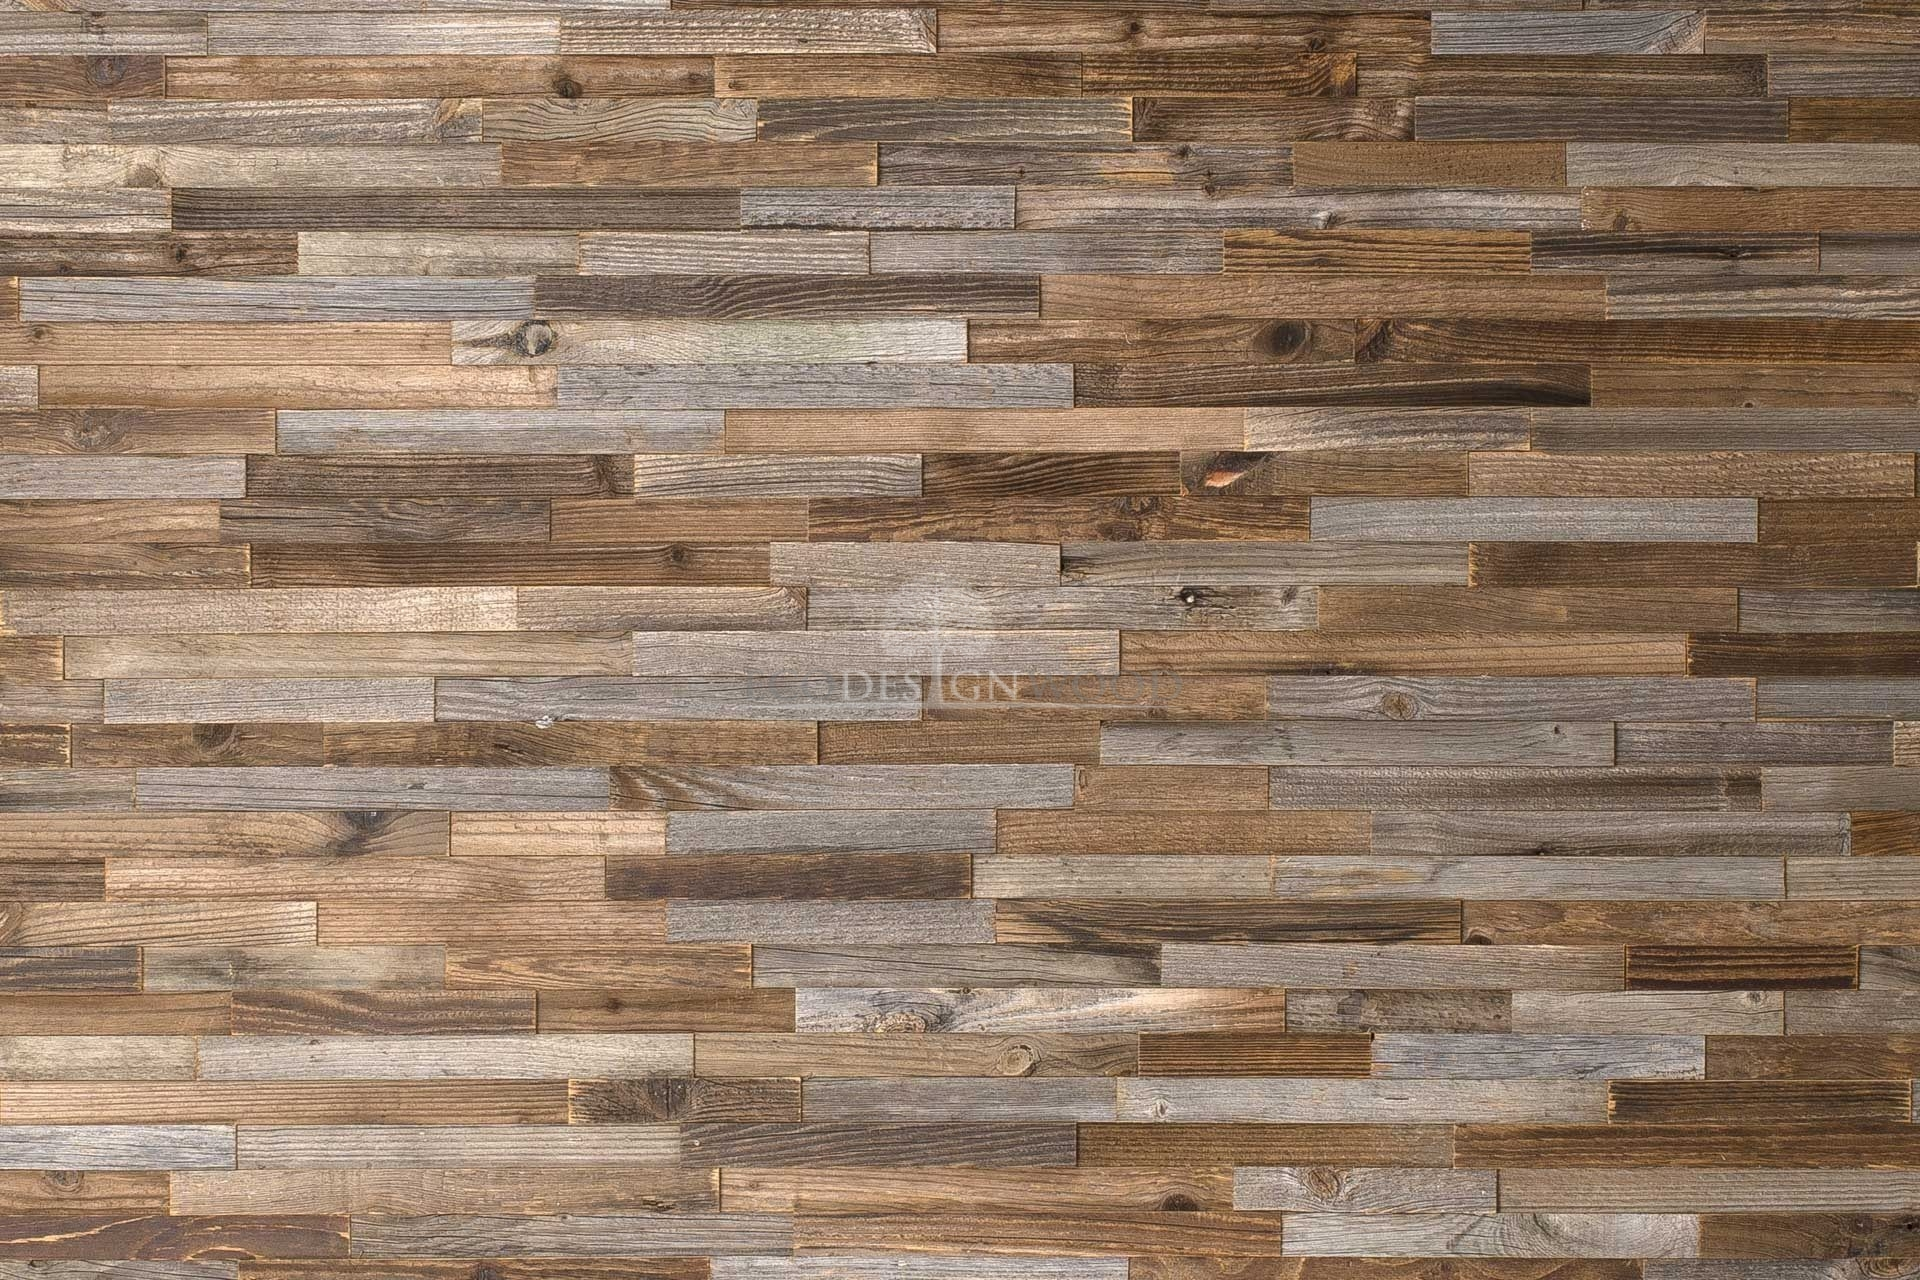 Oregon ecodesignwood reclaimed wood wall panels for Reclaimed wood oregon